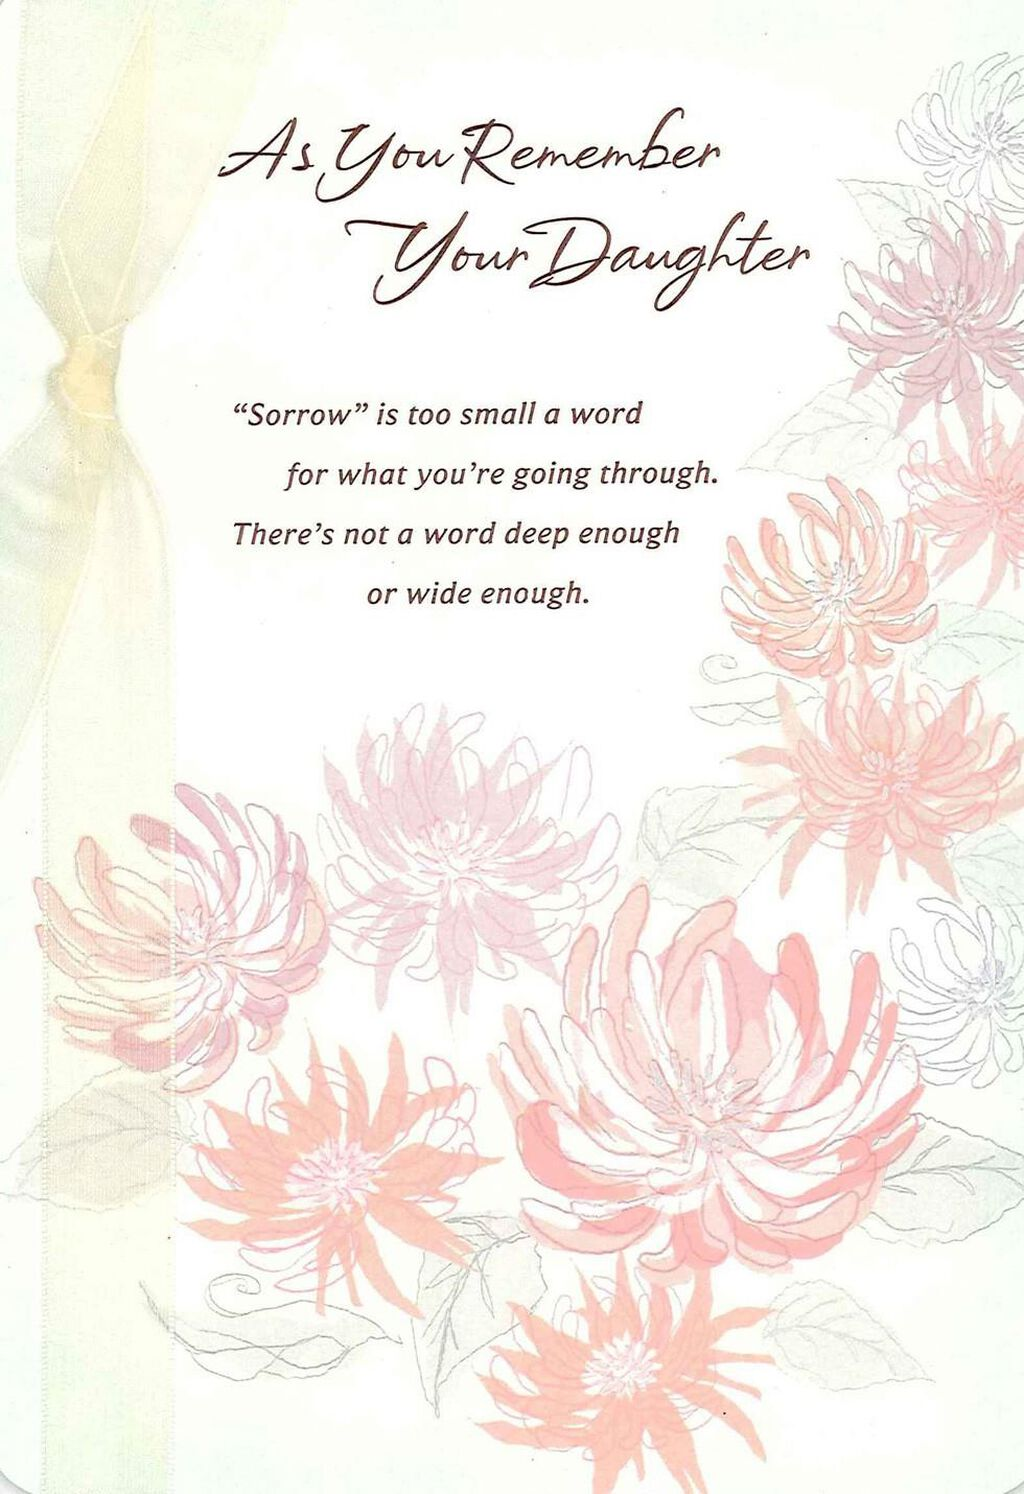 As You Remember Your Daughter Sympathy Card Greeting Cards Hallmark